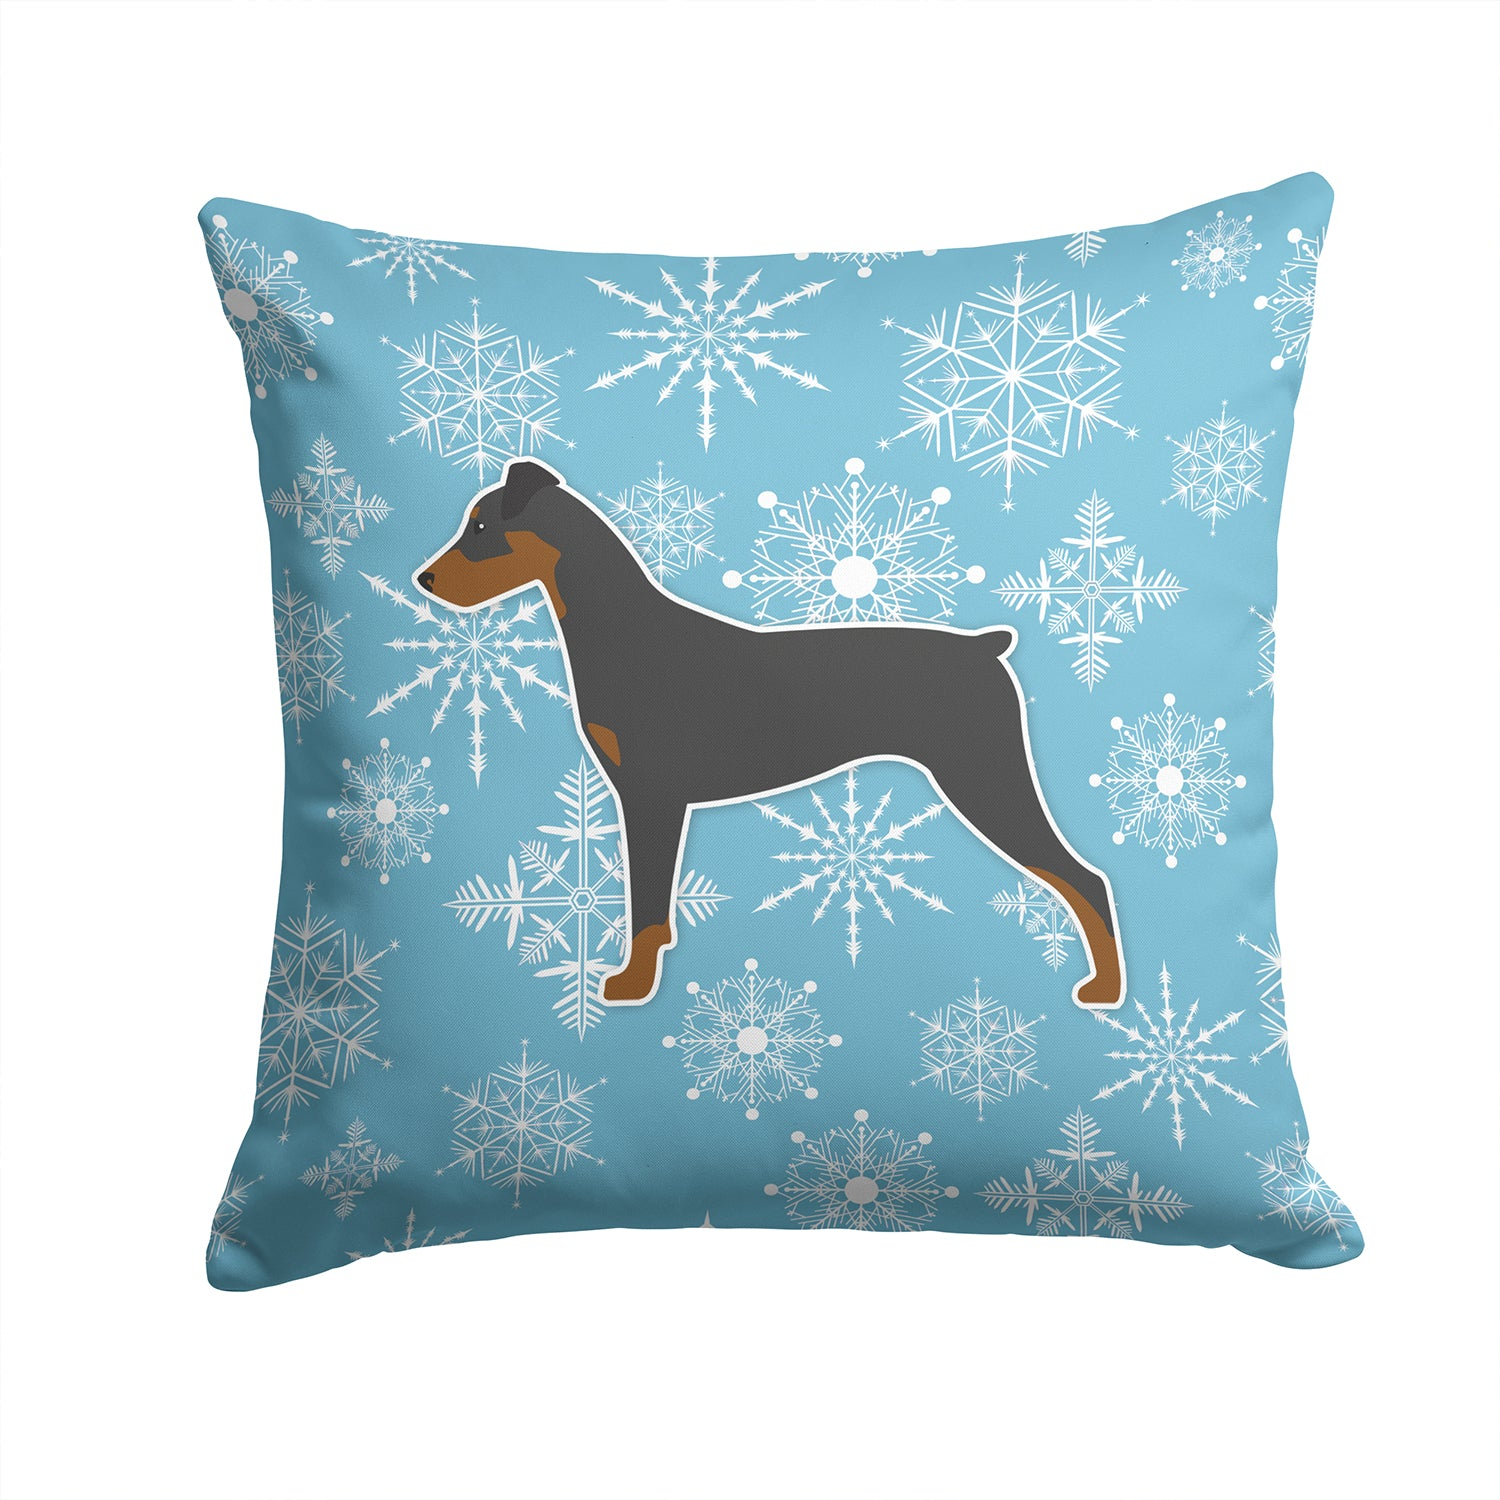 Winter Snowflake German Pinscher Fabric Decorative Pillow BB3513PW1414 by Caroline's Treasures